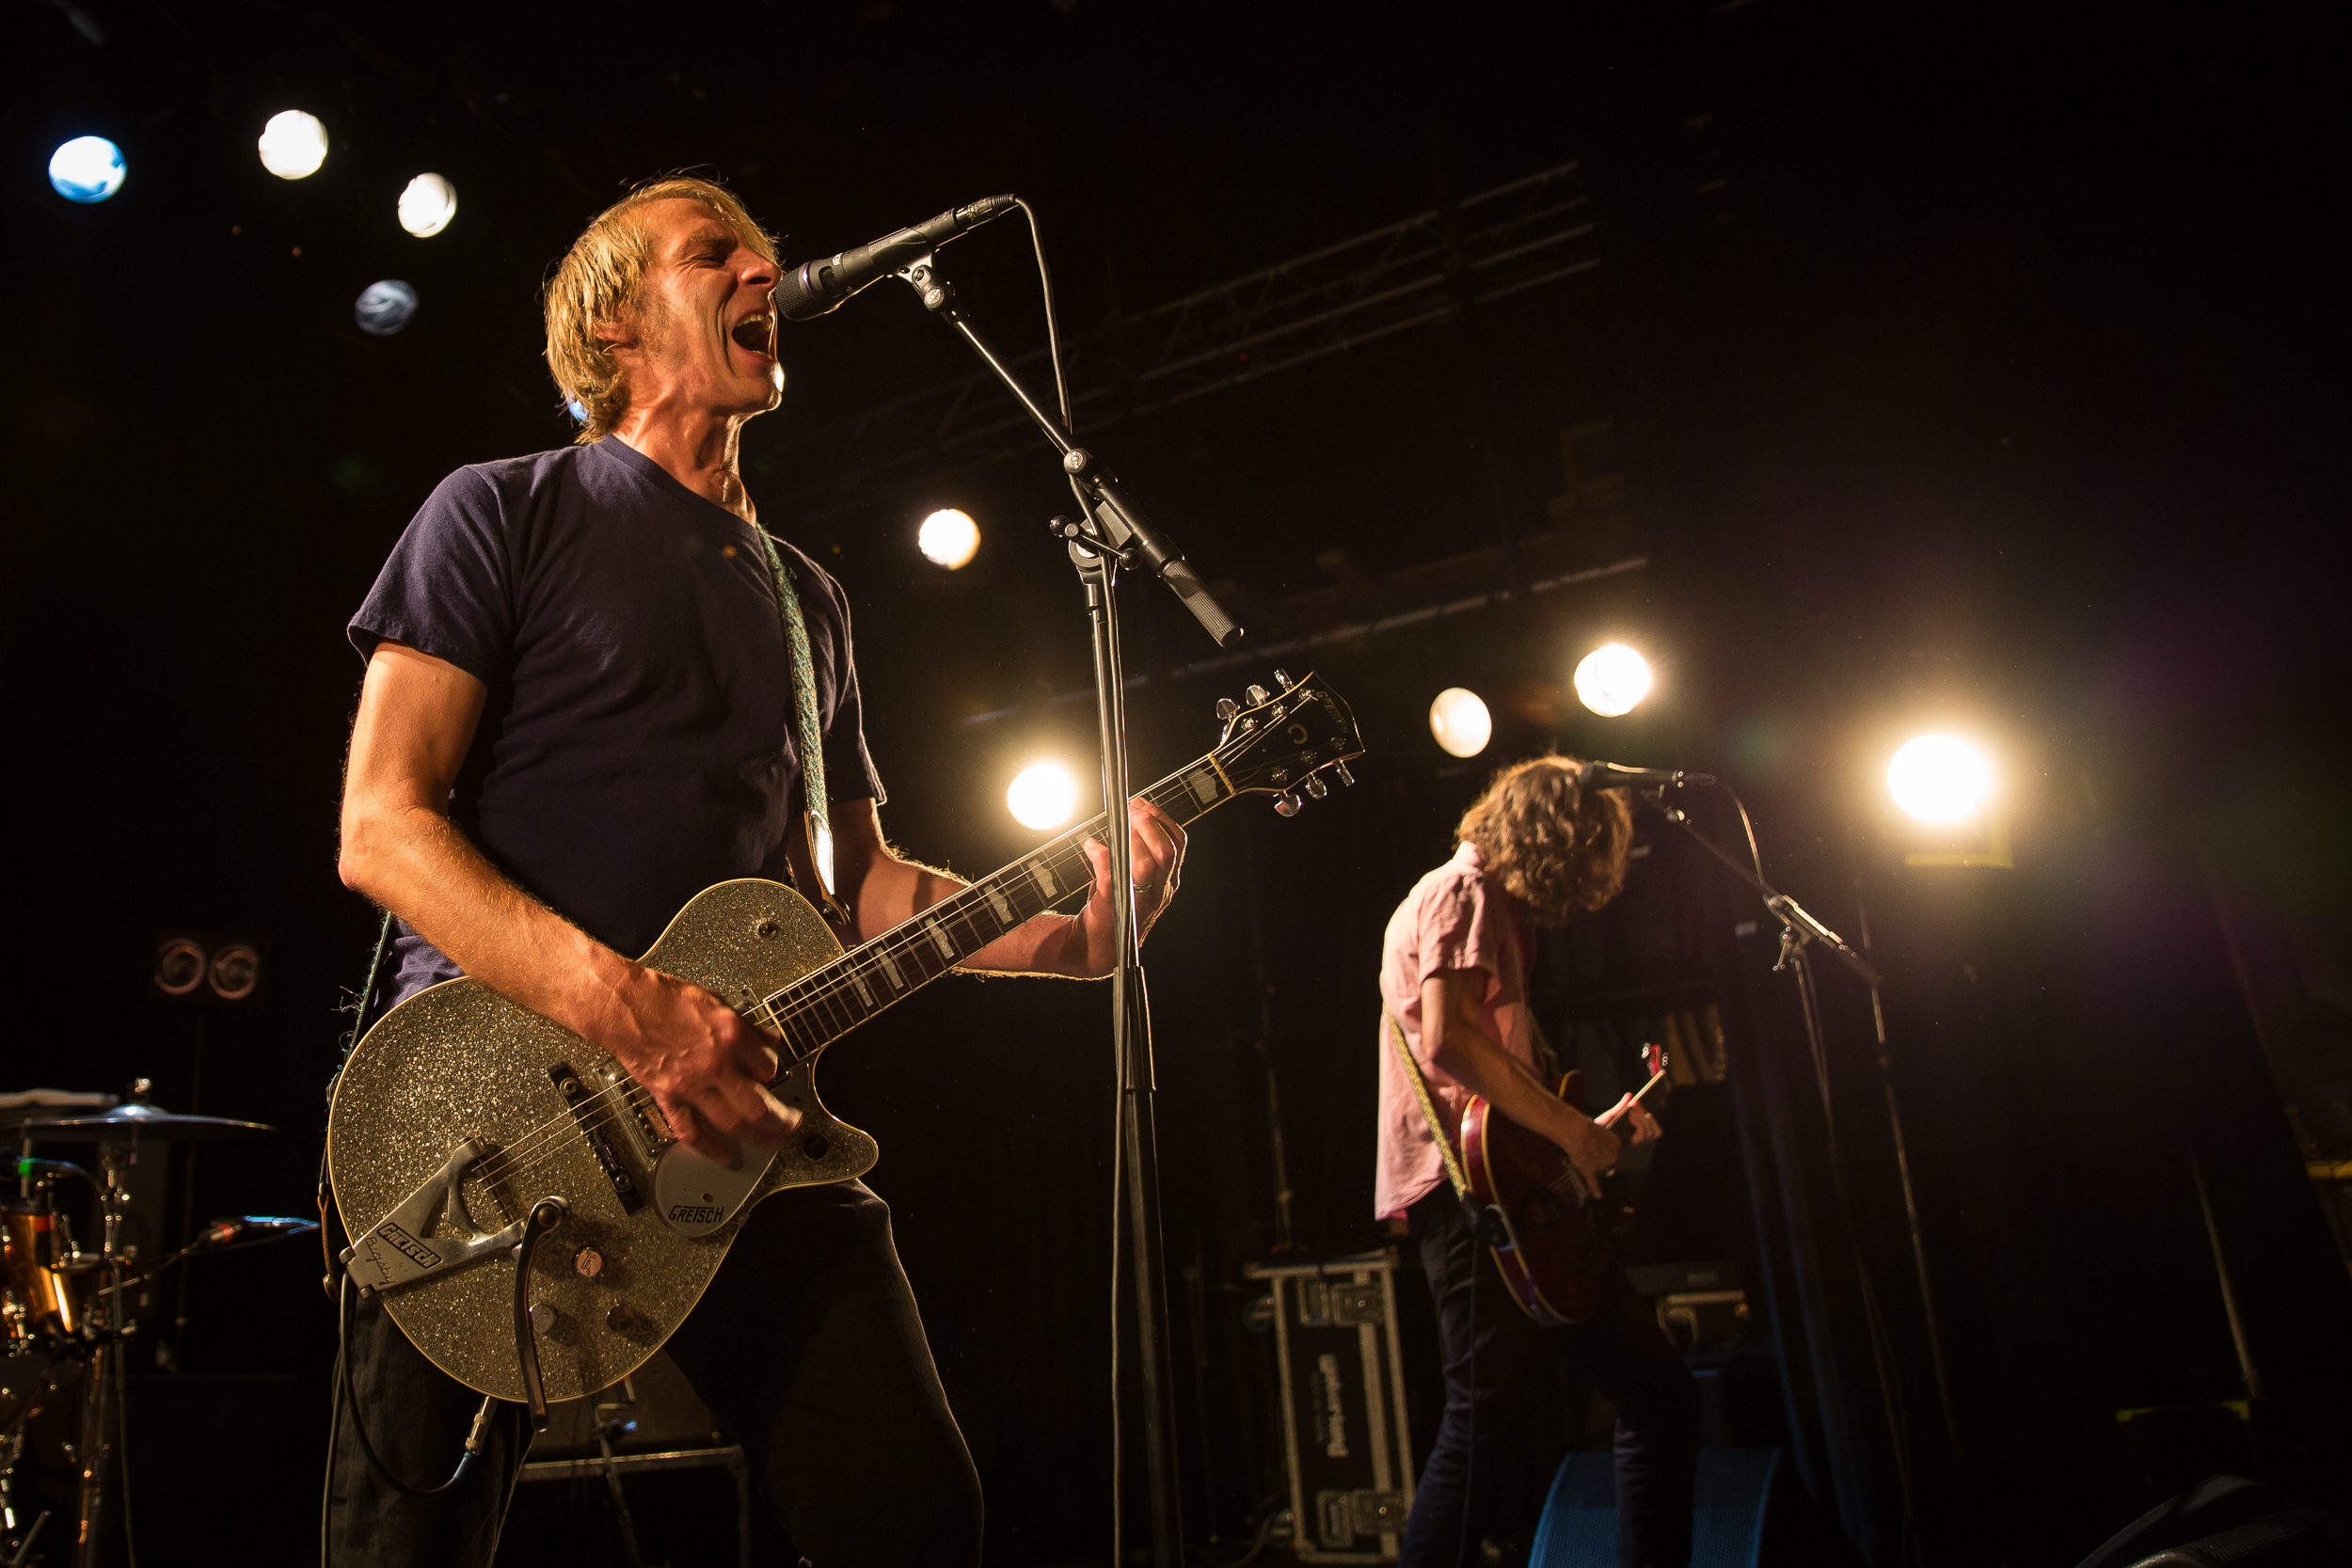 Mudhoney live at Parkteatret, Oslo